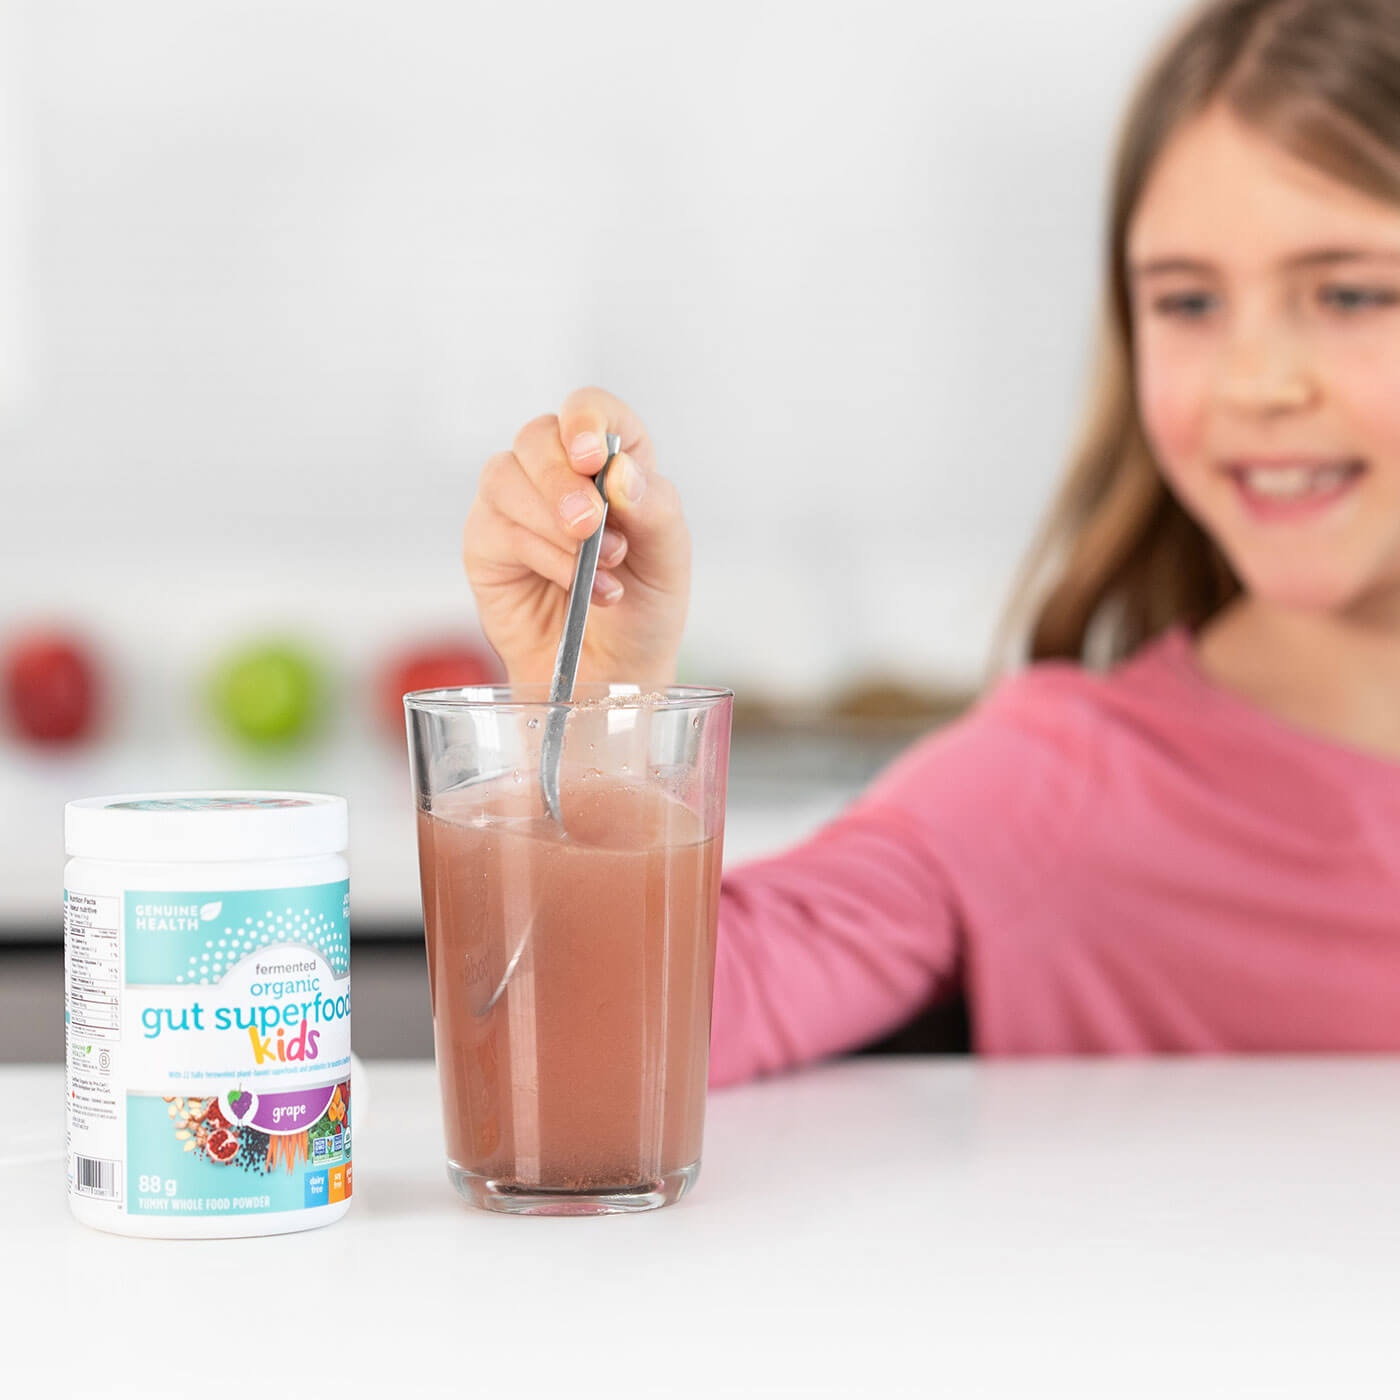 Joyous Health Genuine Healthy Kids Feremented Organic Gut Superfoods+ Kids